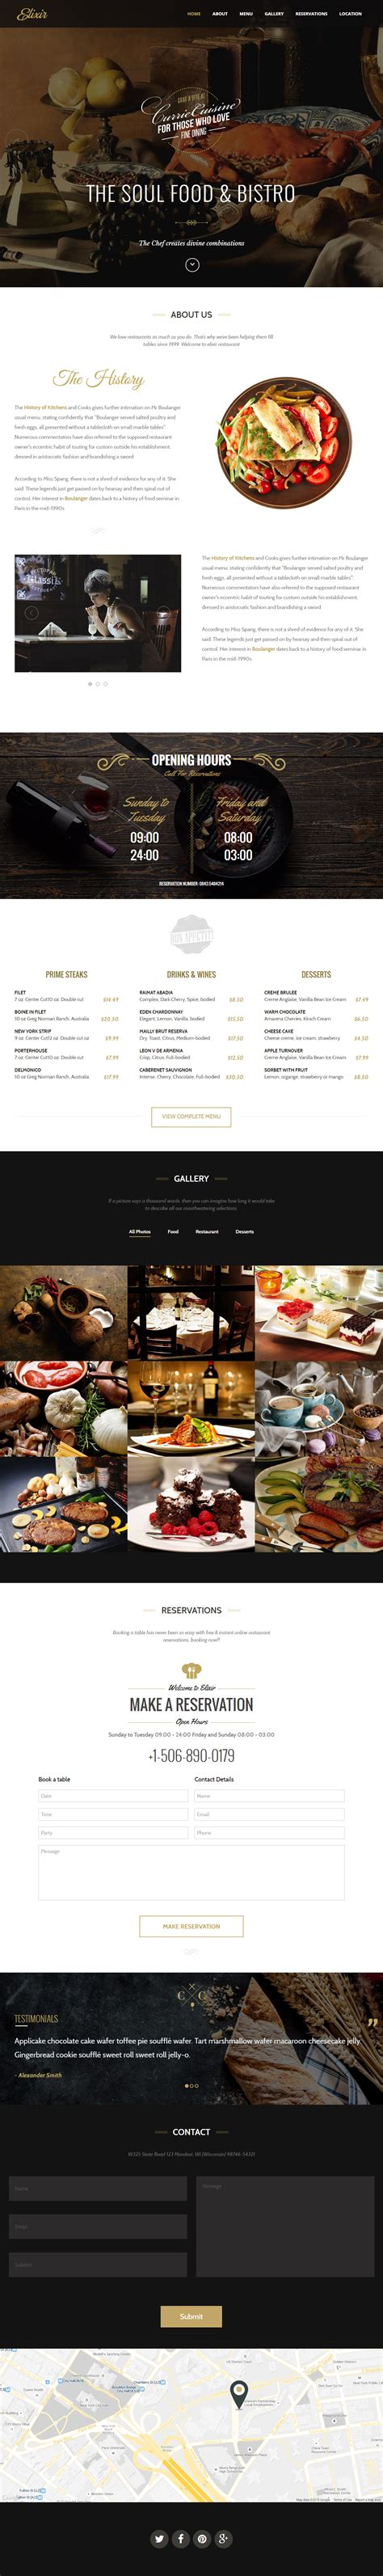 40 Best Cafe And Restaurant Website Templates In 2017 Responsive Miracle Best Restaurant Website Templates